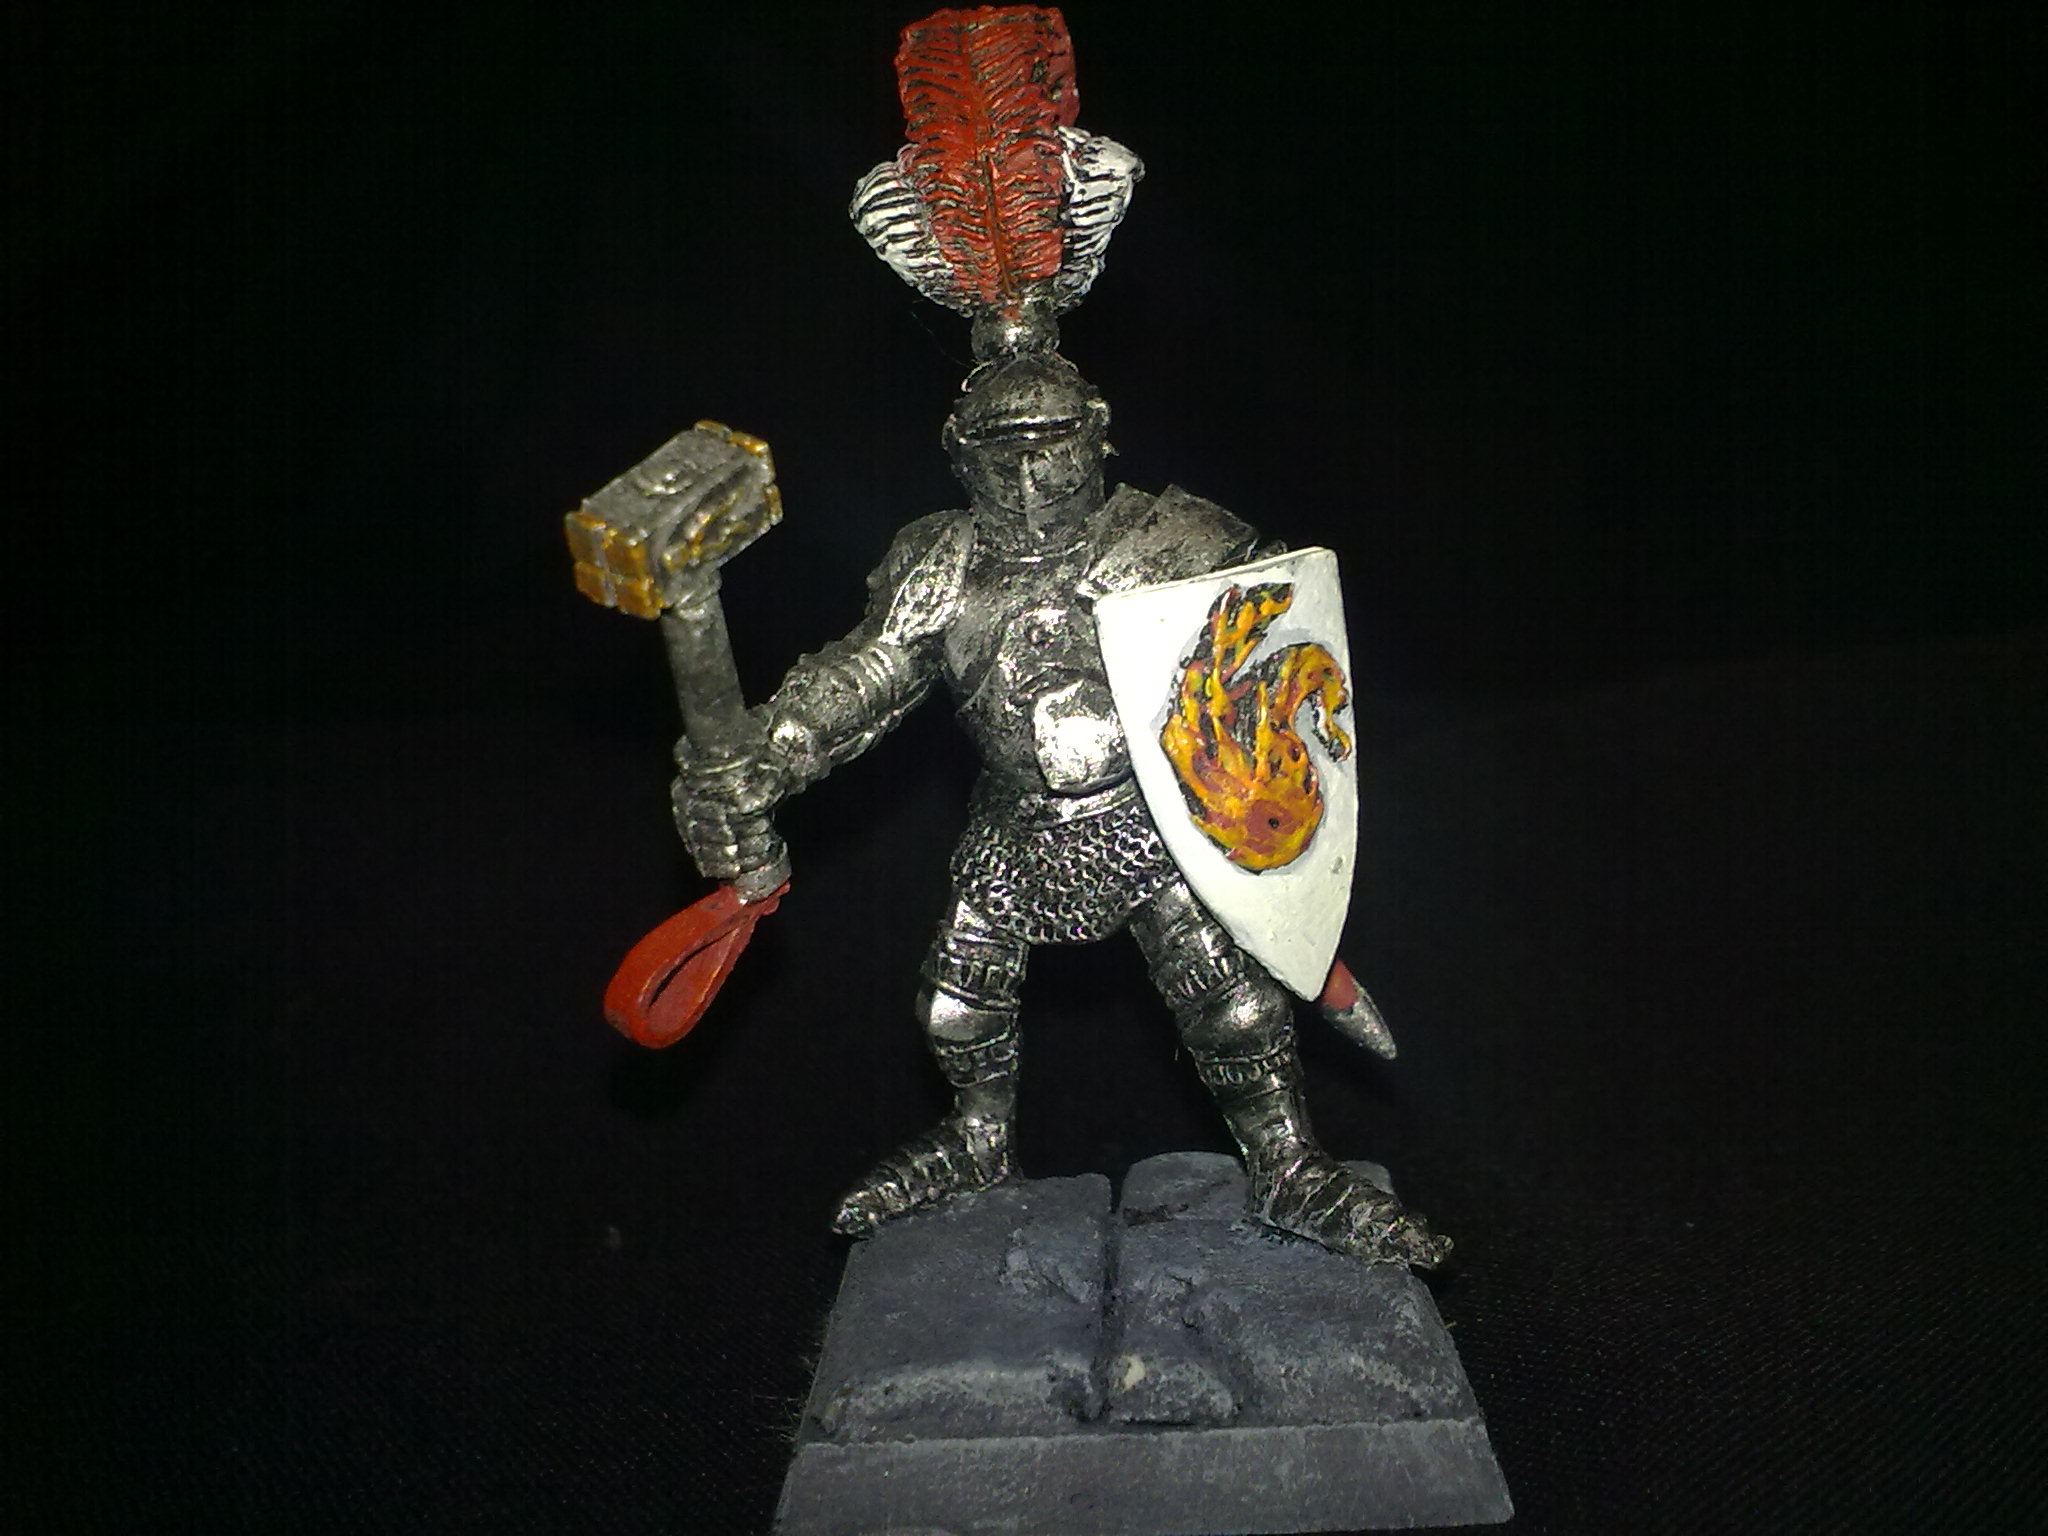 Sigmarite Empire Knight Templar, painted by Questing Knight